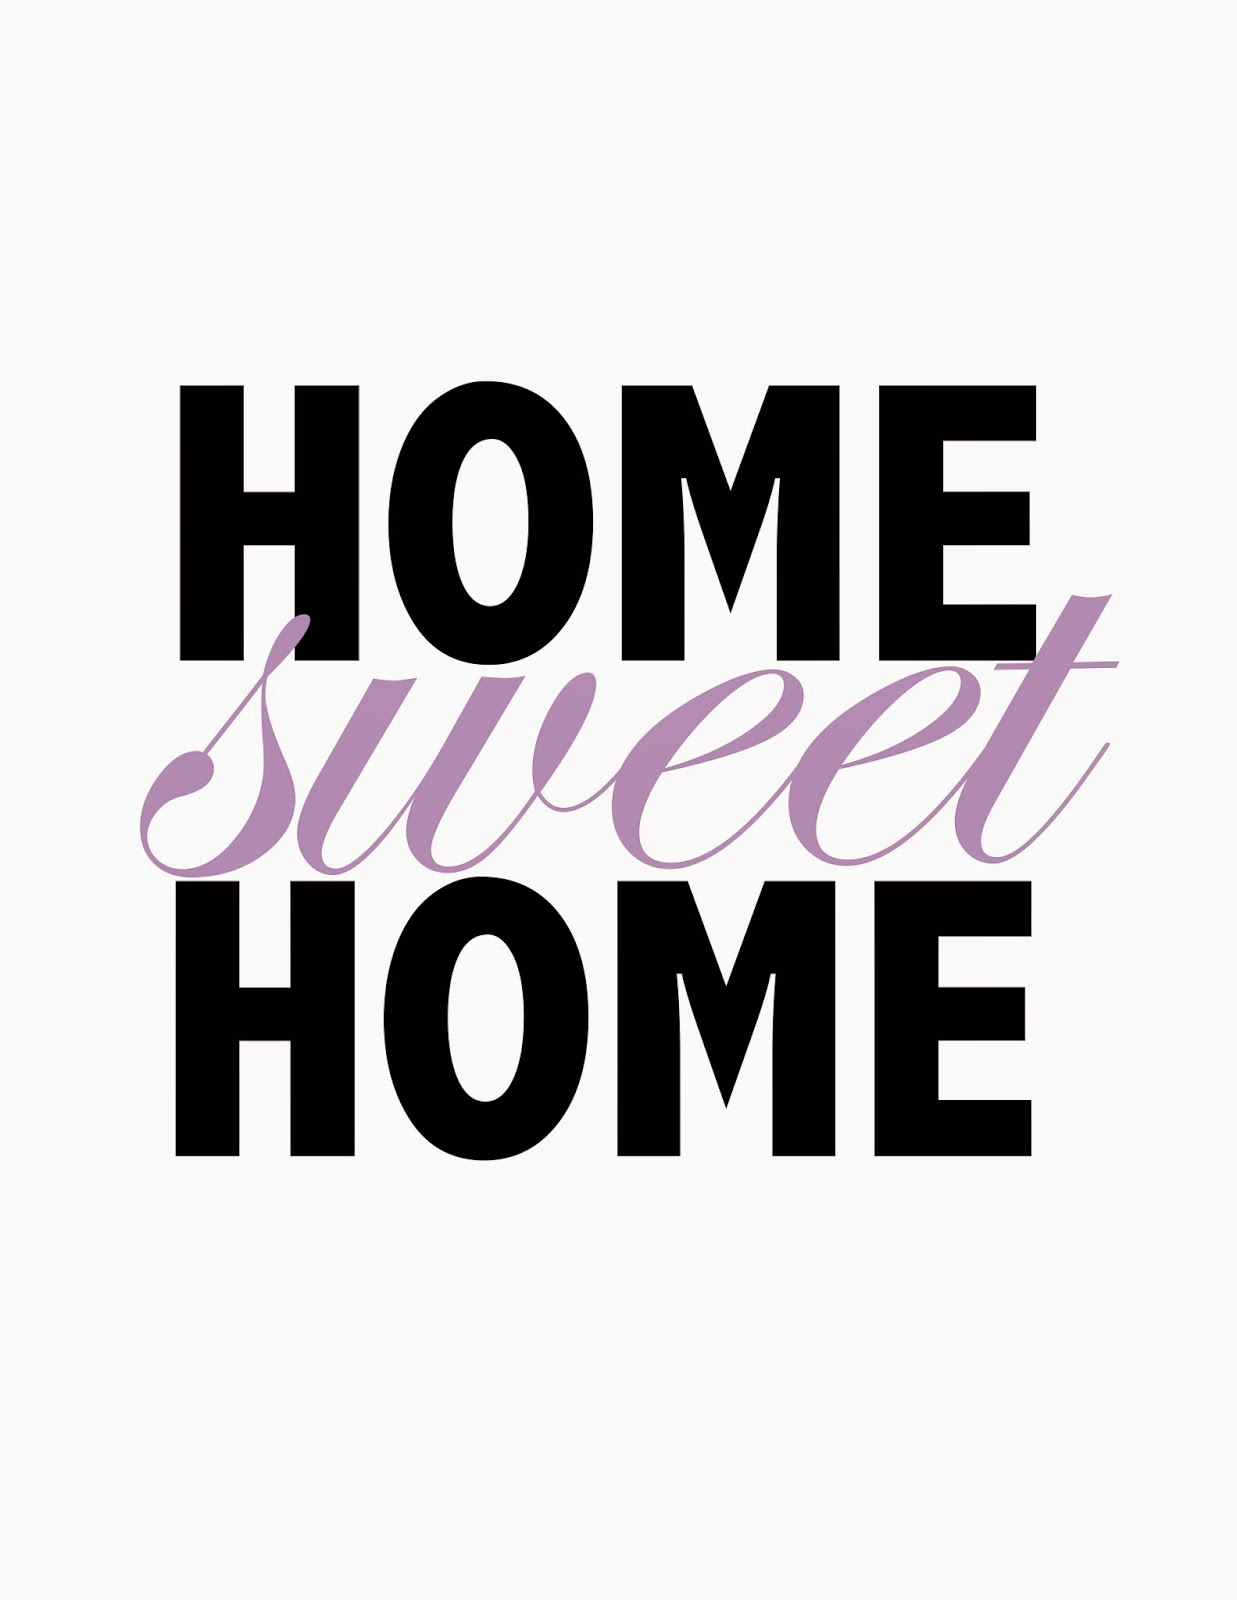 Home sweet home printable short stop designs - Home sweet home designs ...